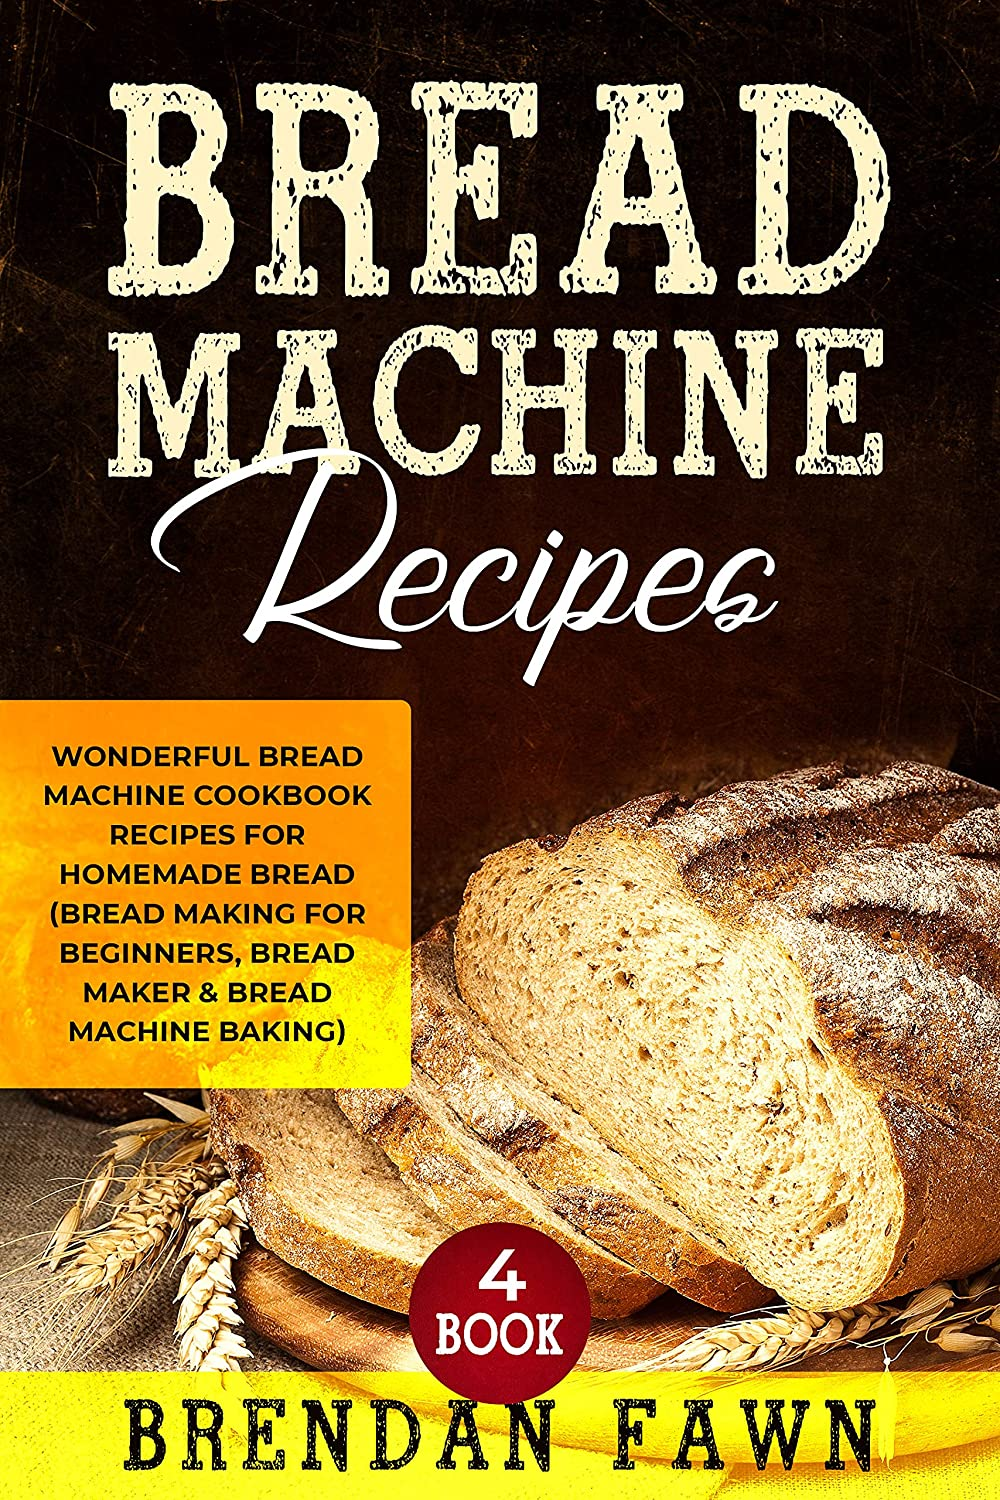 Bread Machine Recipes: Wonderful Bread Machine Cookbook Recipes for Homemade Bread (Bread Making for Beginners, Bread Maker & Bread Machine Baking) (Bread Machine Wonders  4) (English Edition)